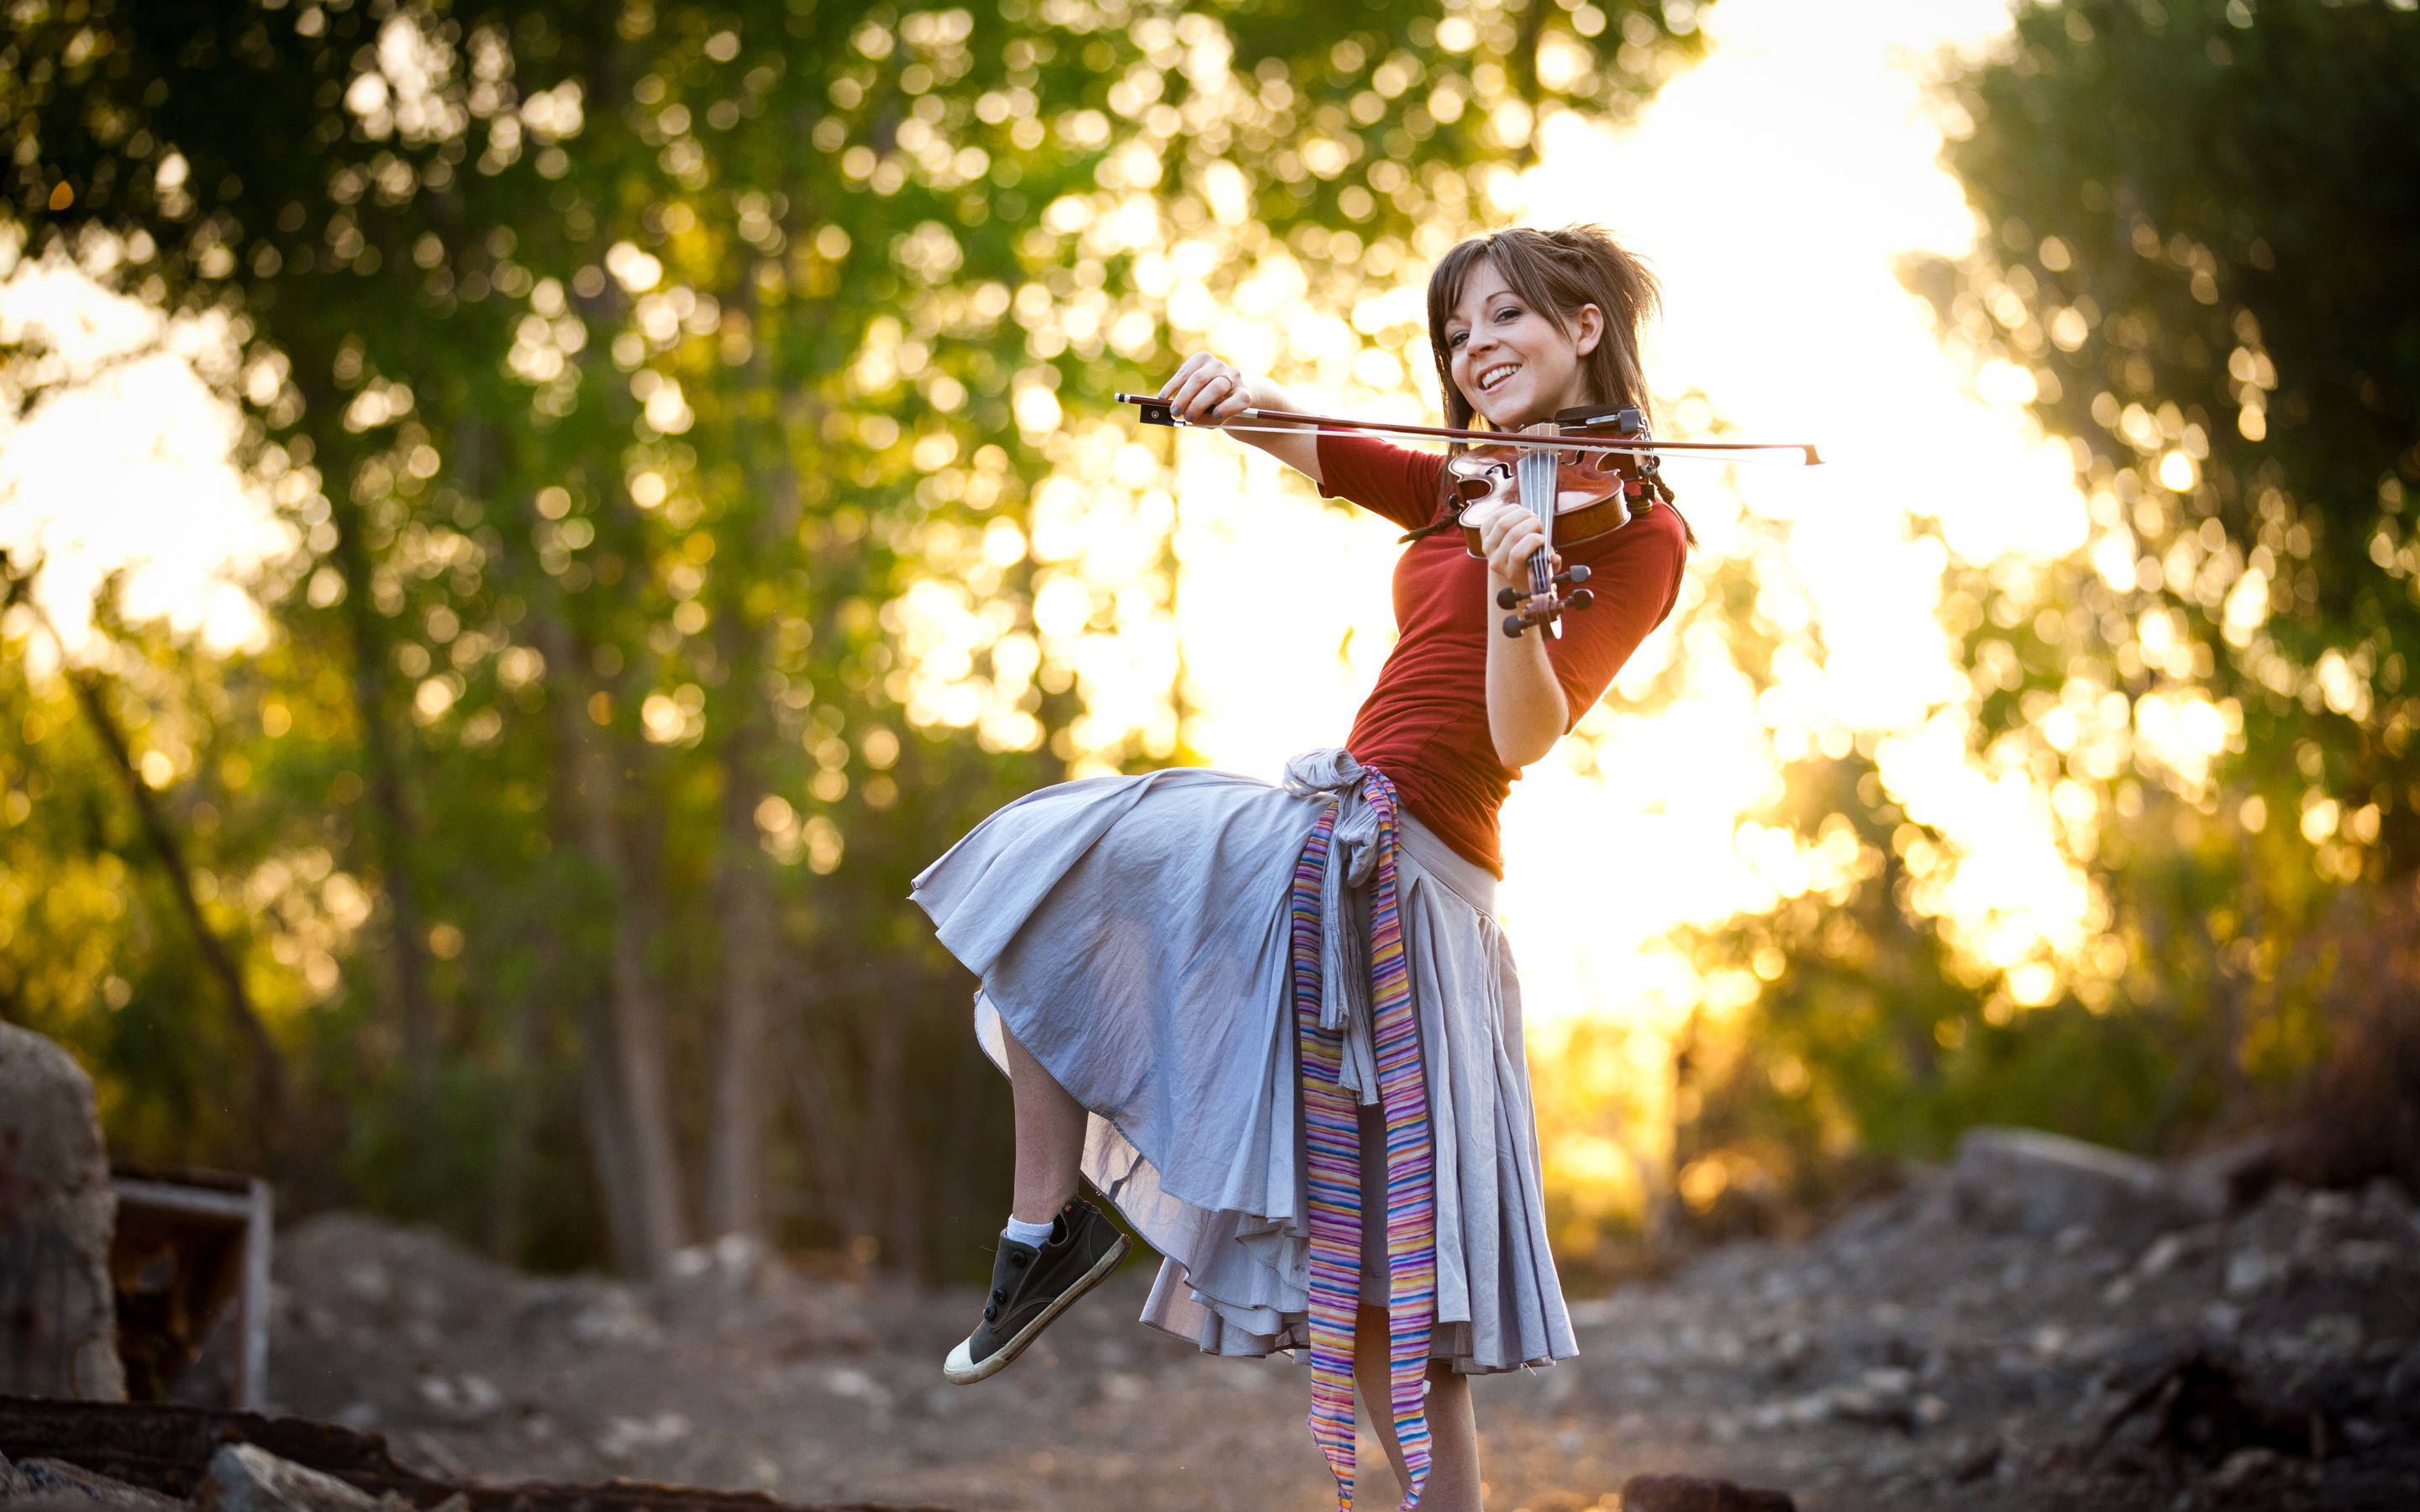 Interview Violin Virtuoso Lindsey Stirling On Fame Faith